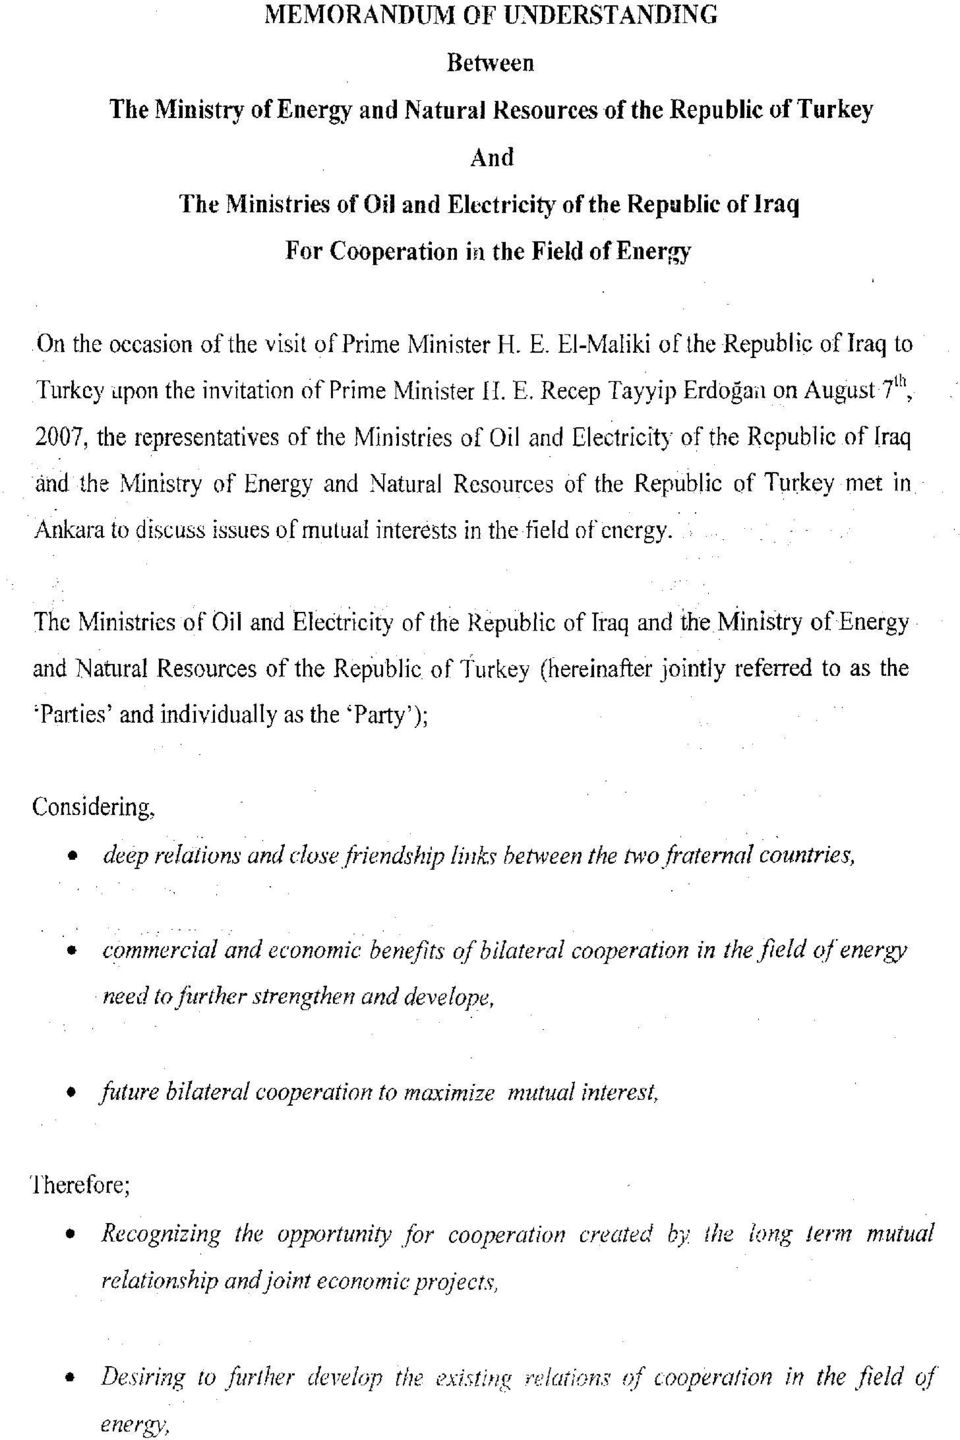 """, 2007, the representatives of the Ministries of Oil and Electricity of the Republic of Iraq and the Ministry of Energy and Natural Resources of the Republic of Turkey met in Ankara to discuss"